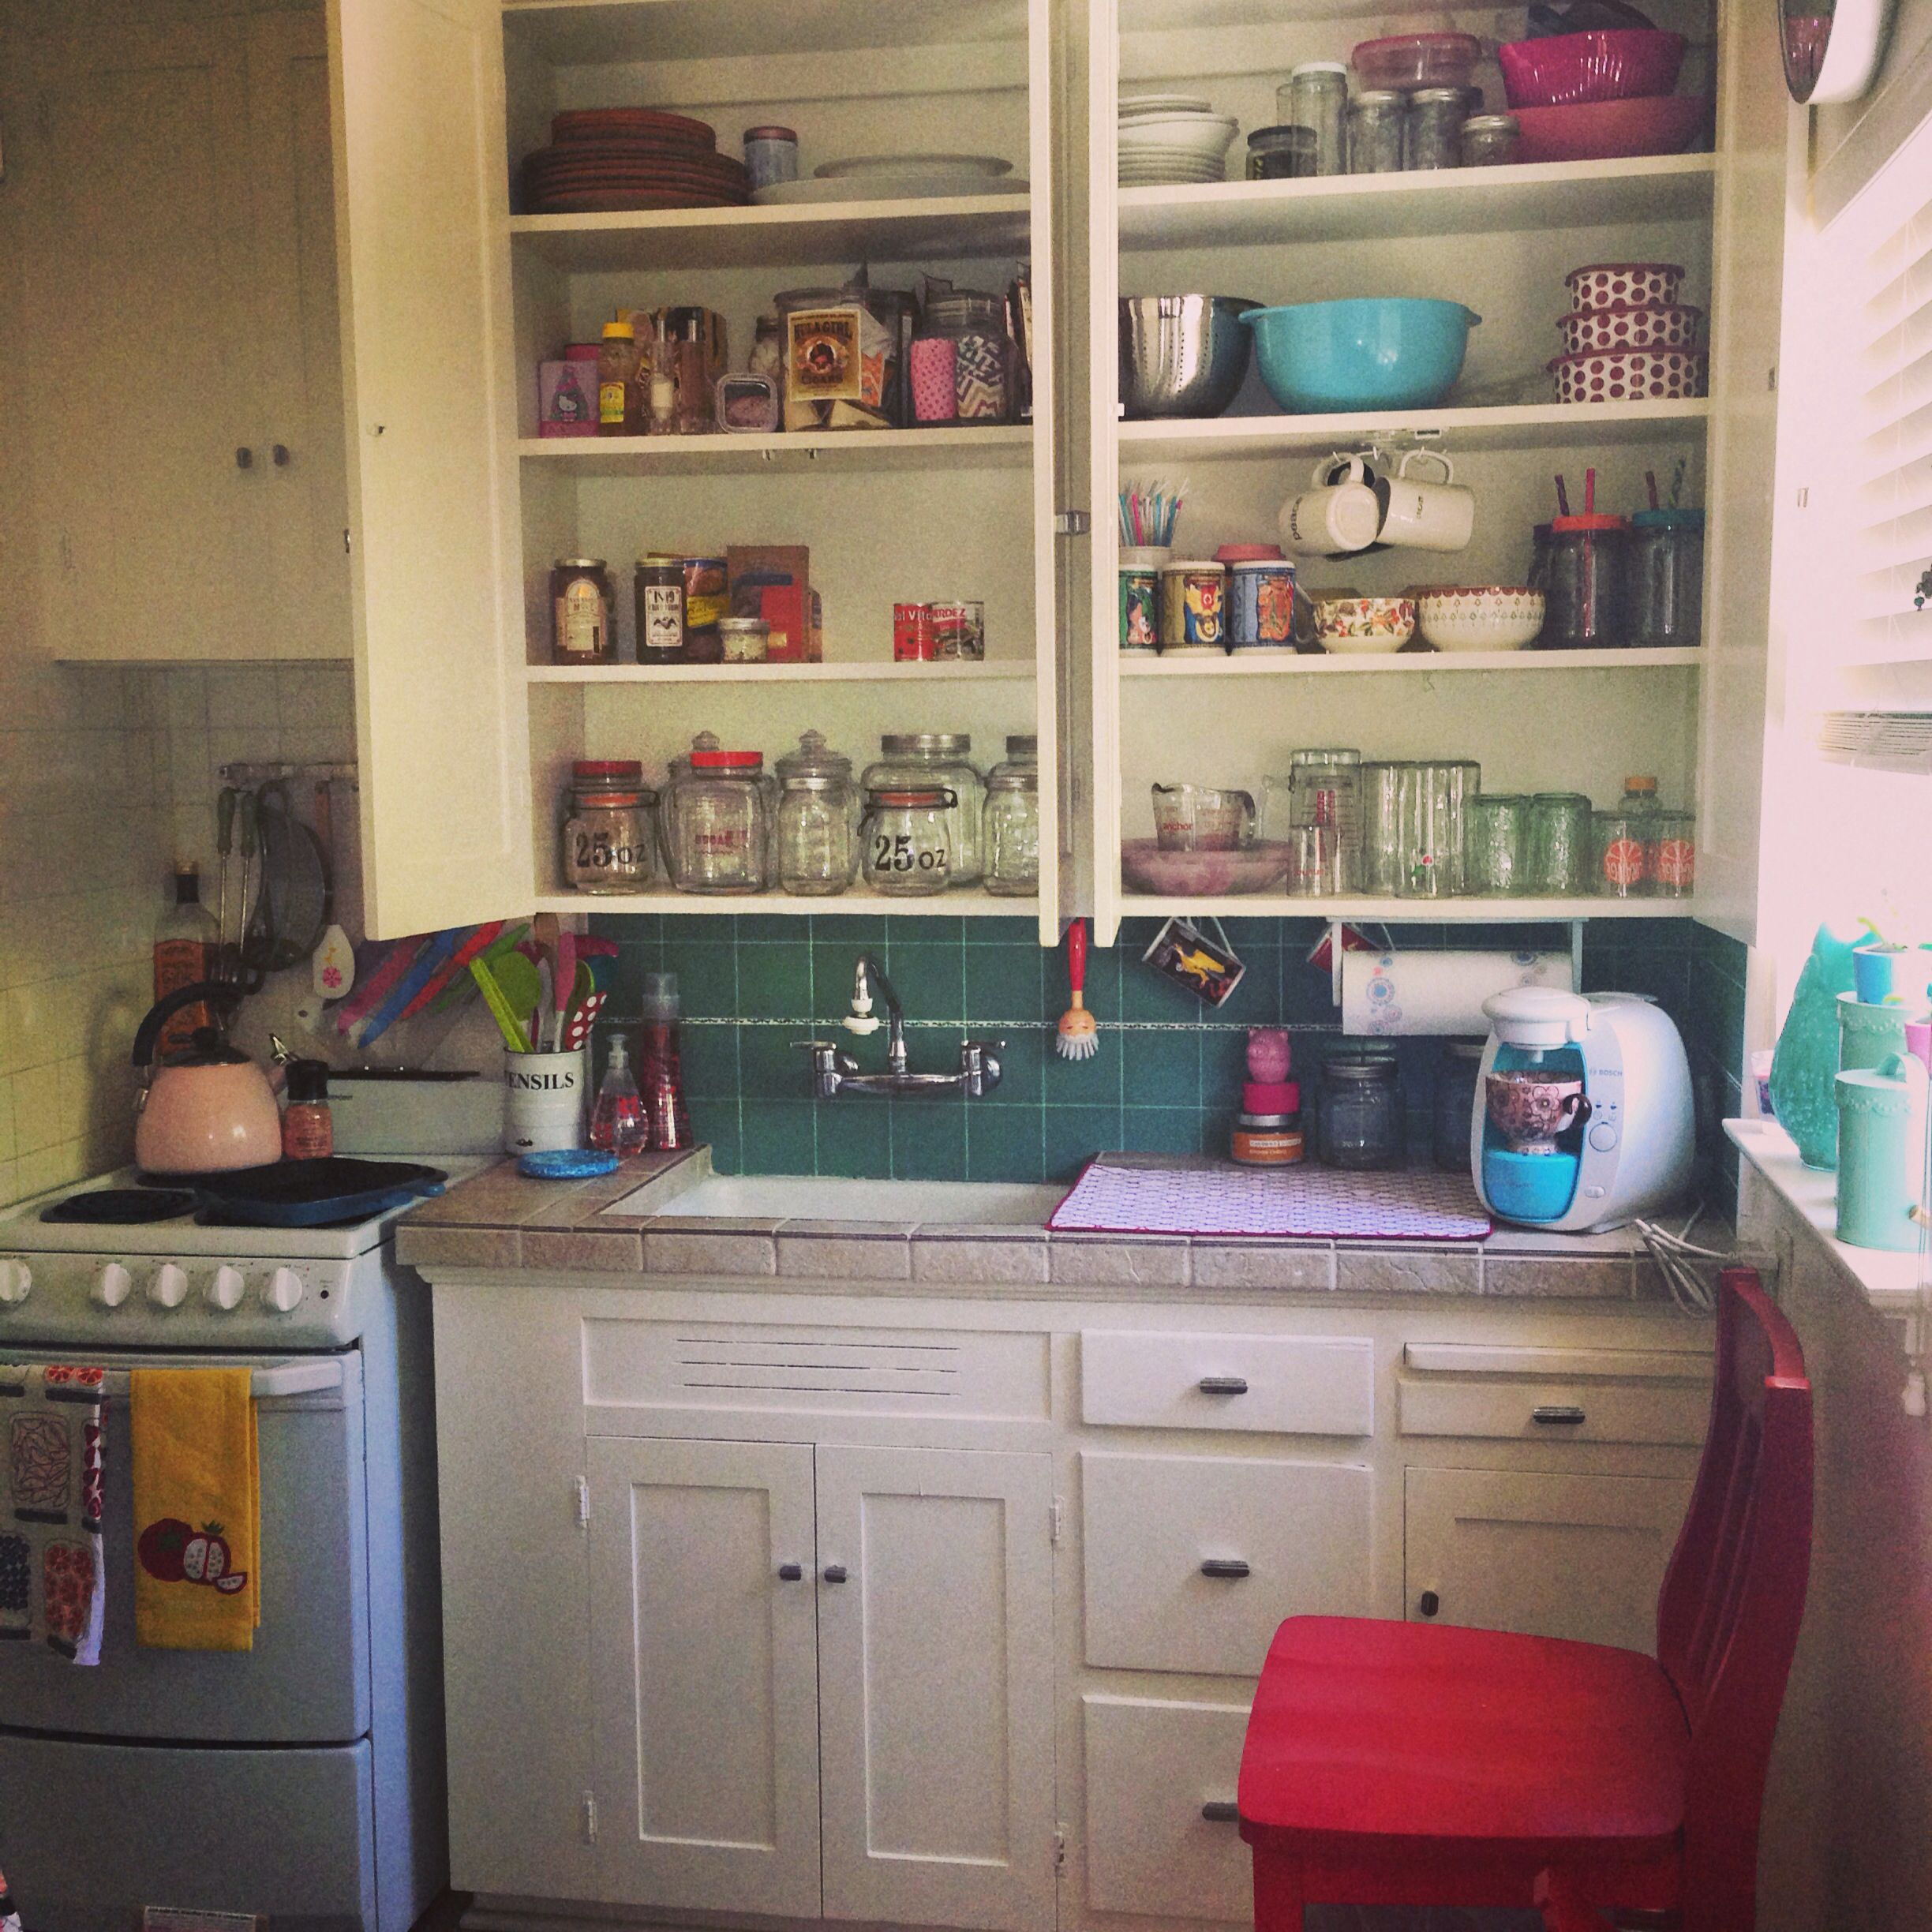 Glass Canisters To Store Food In My Deep 1940s Kitchen Cabinets 1940s Kitchen Kitchen Cabinets Kitchen